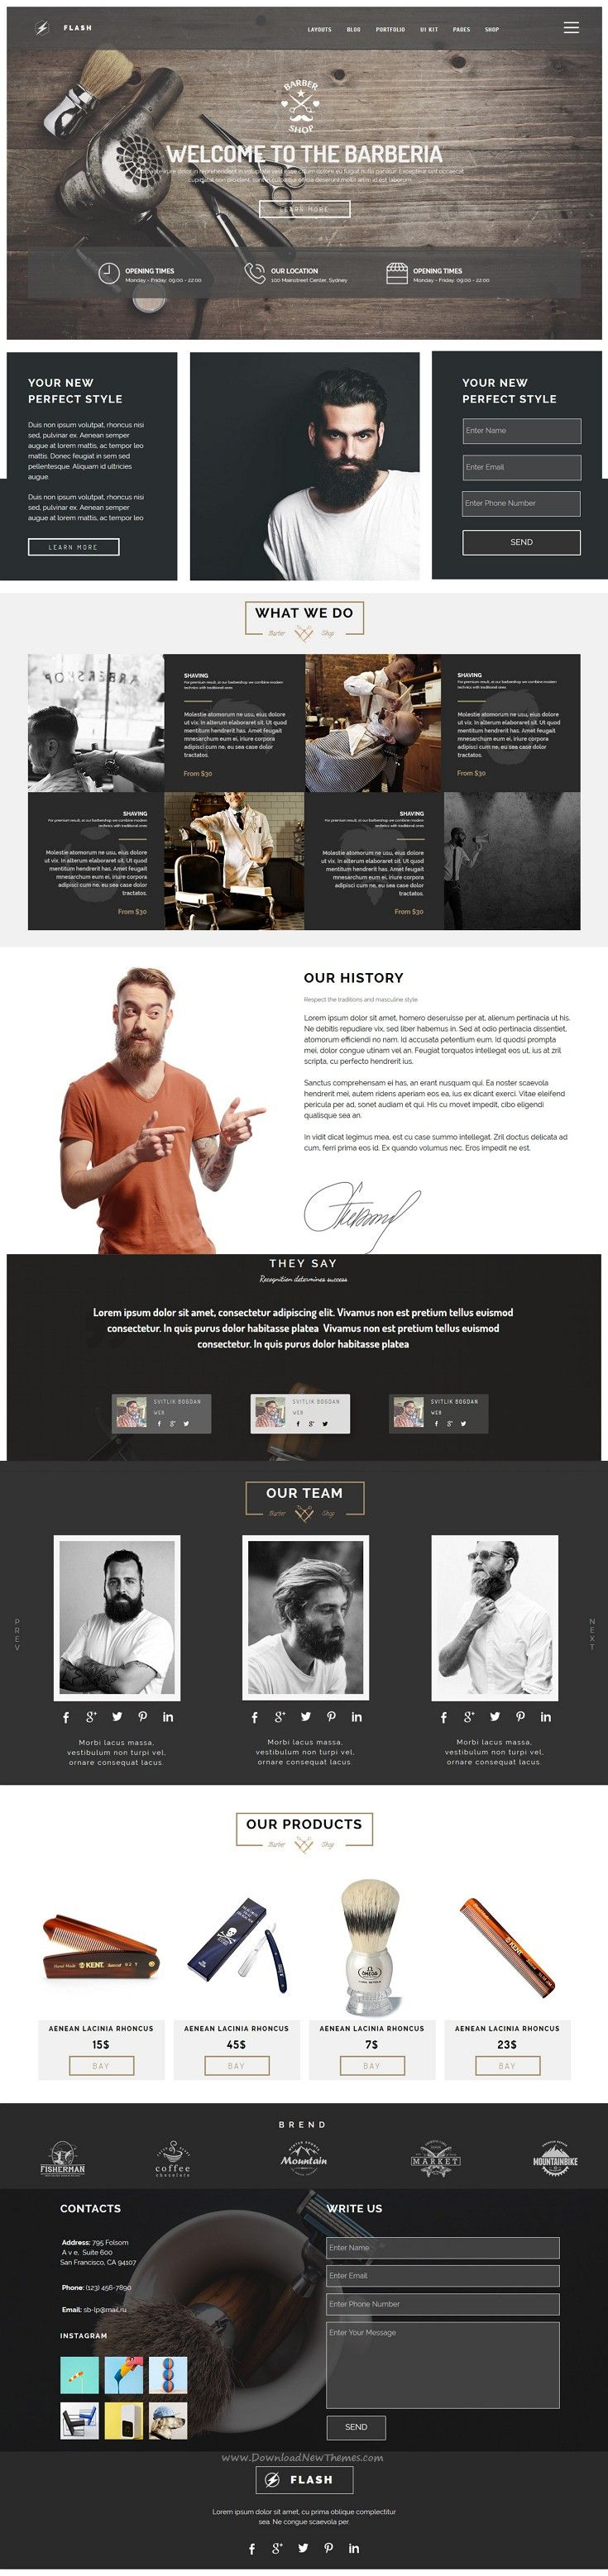 Flash Multi Purpose Muse Template Wordpress Website Design Web Layout Design Business Website Templates